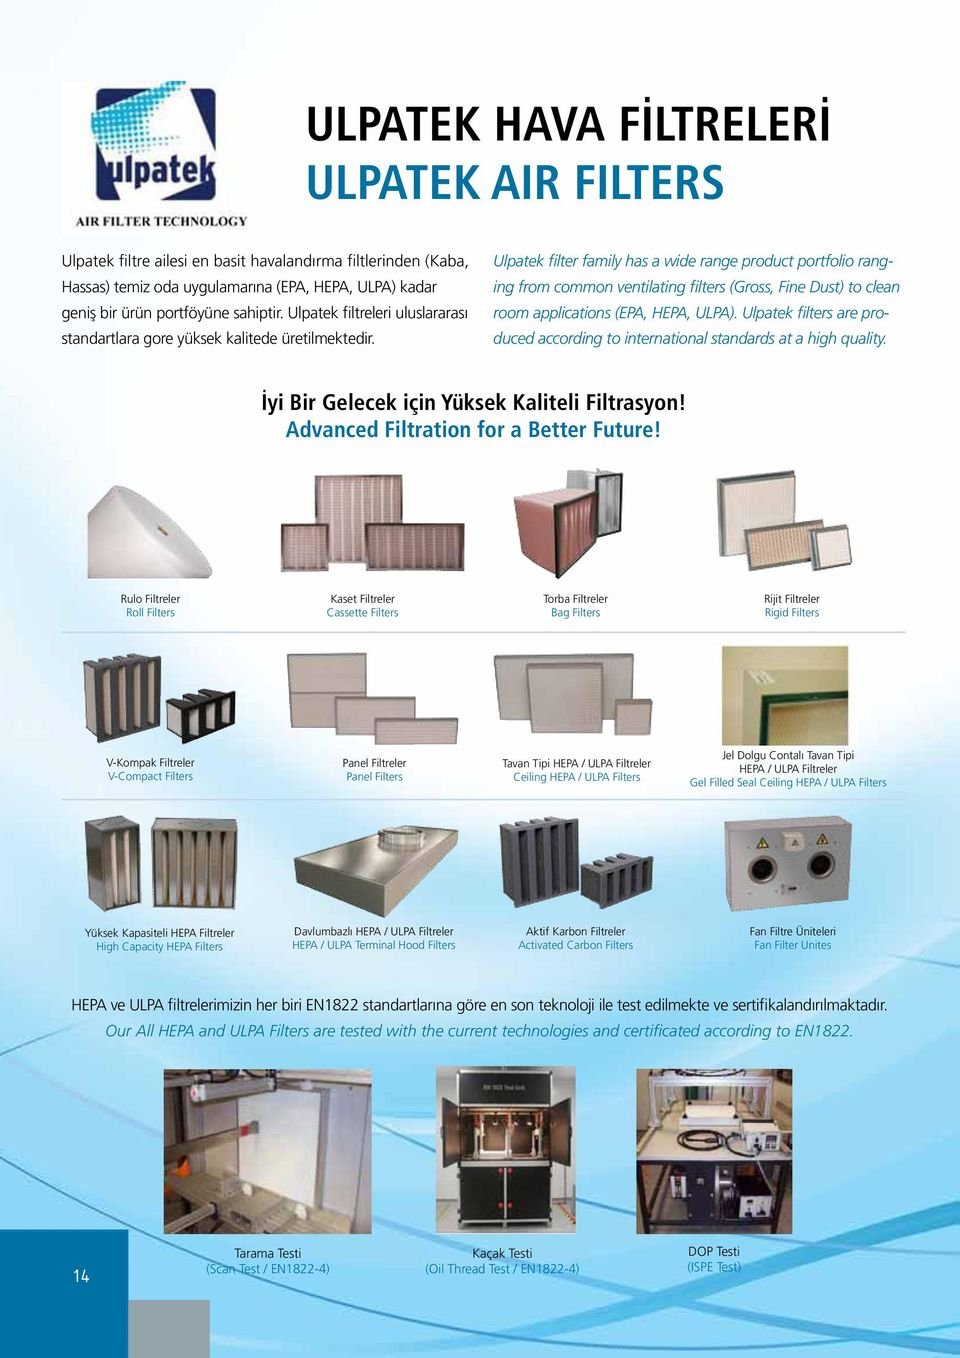 Ulpatek filter family has a wide range product portfolio ranging from common ventilating filters (Gross, Fine Dust) to clean room applications (EPA, HEPA, ULPA).